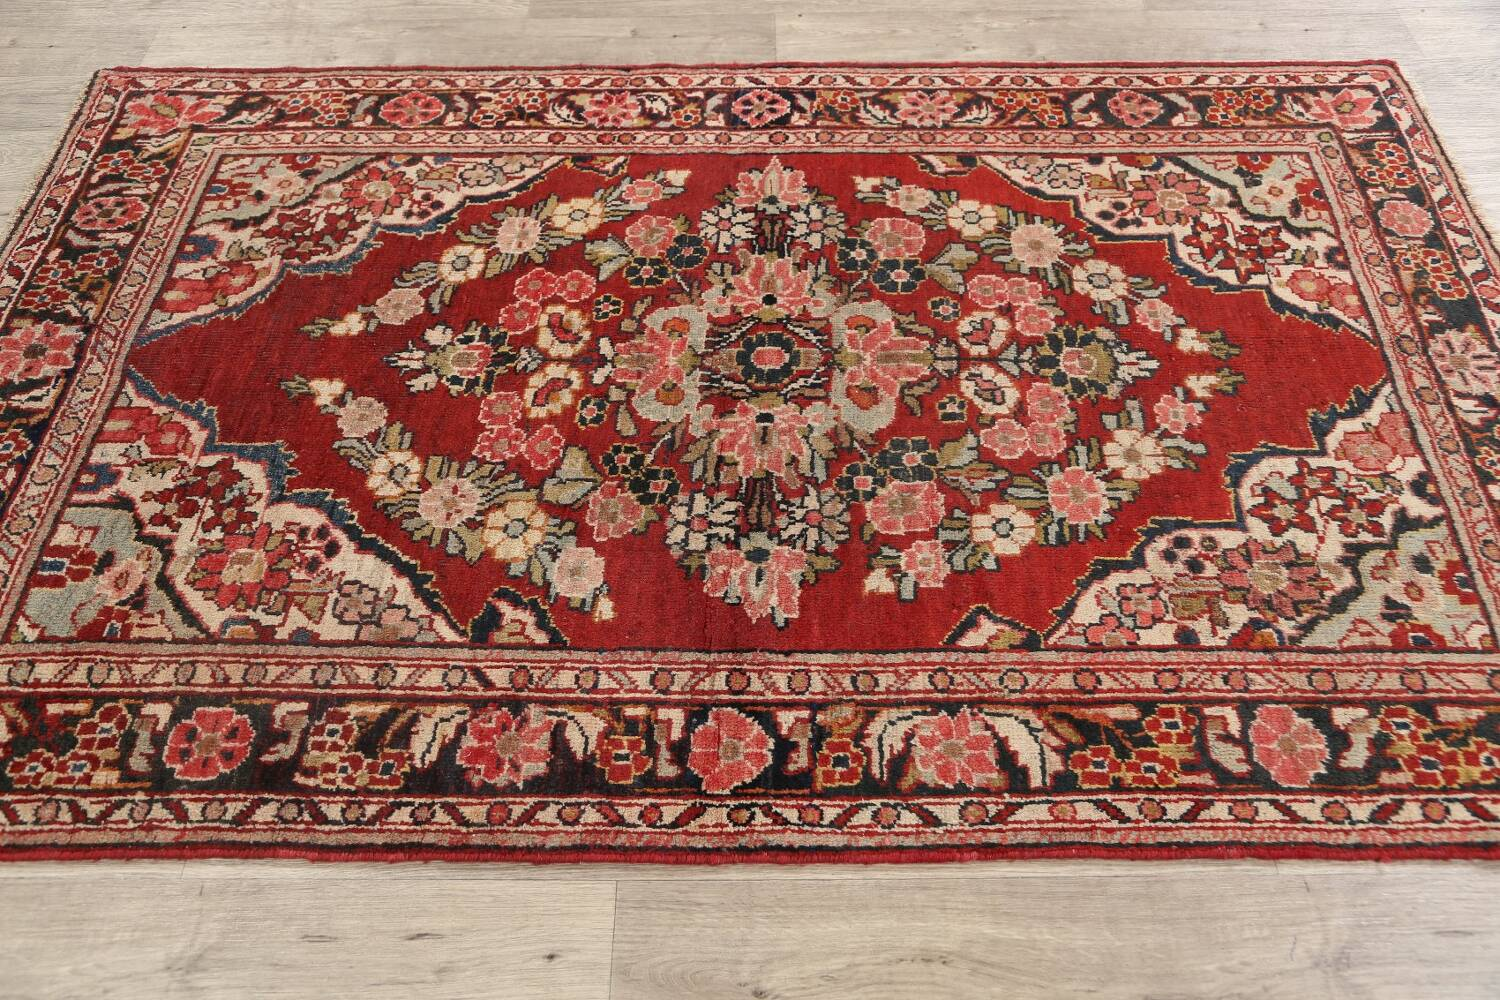 Antique Floral Mahal Persian Area Rug 4x7 image 14